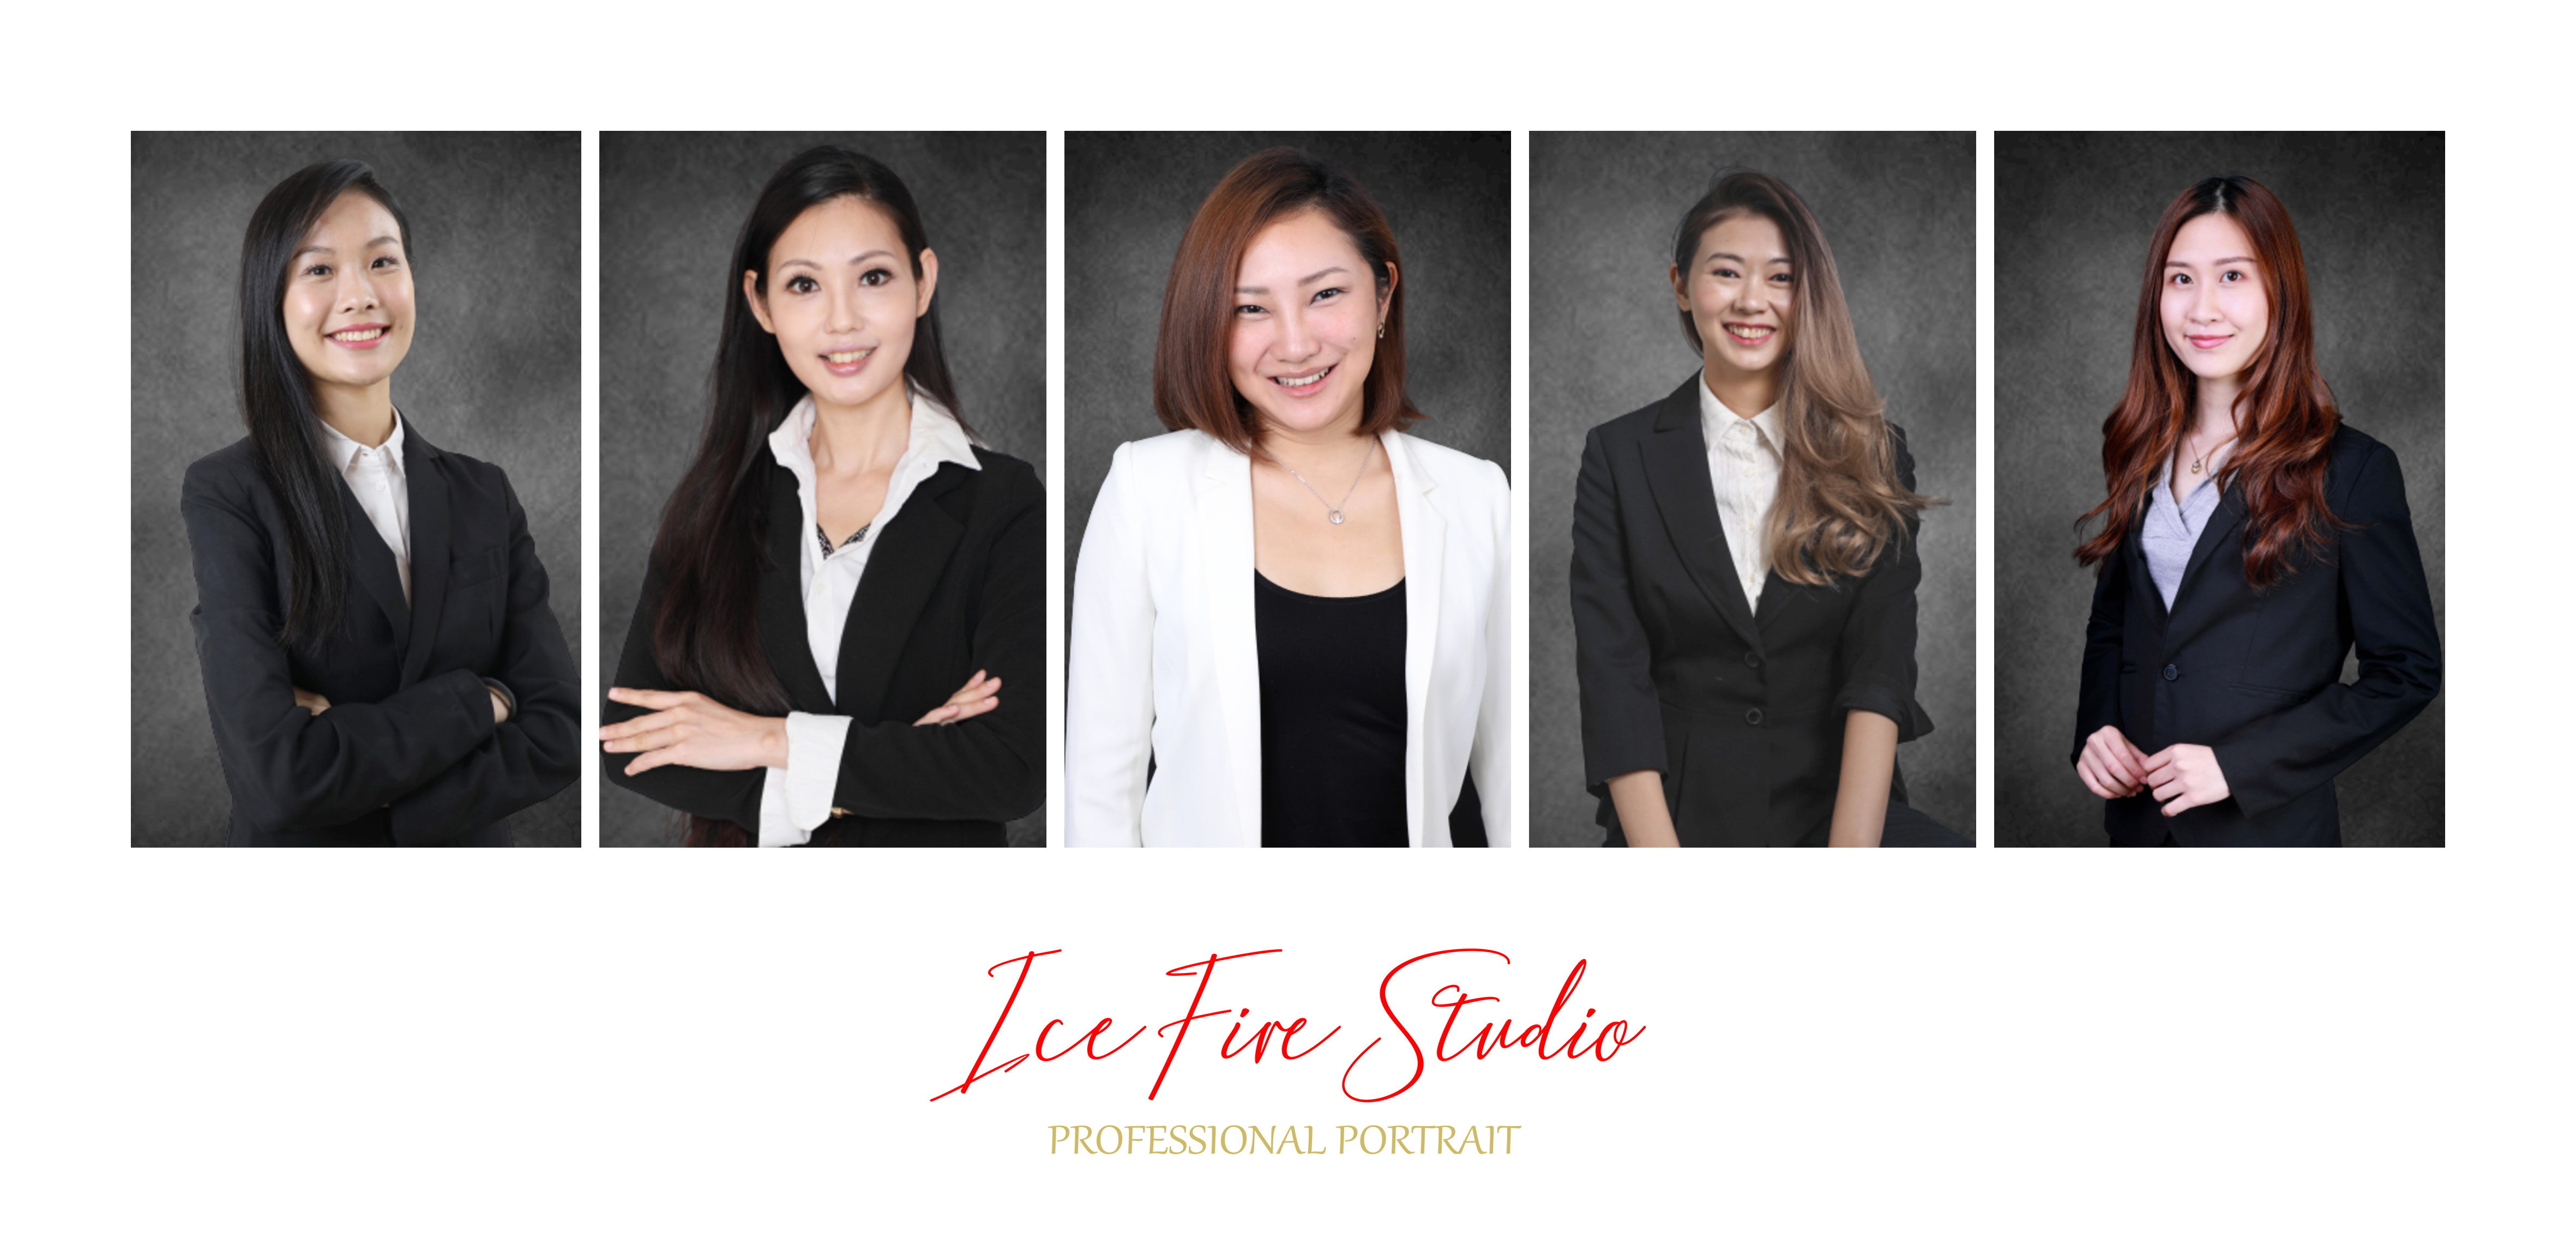 專業形象照 corporate headshot smart portrait cv photo icefire studio hong kong